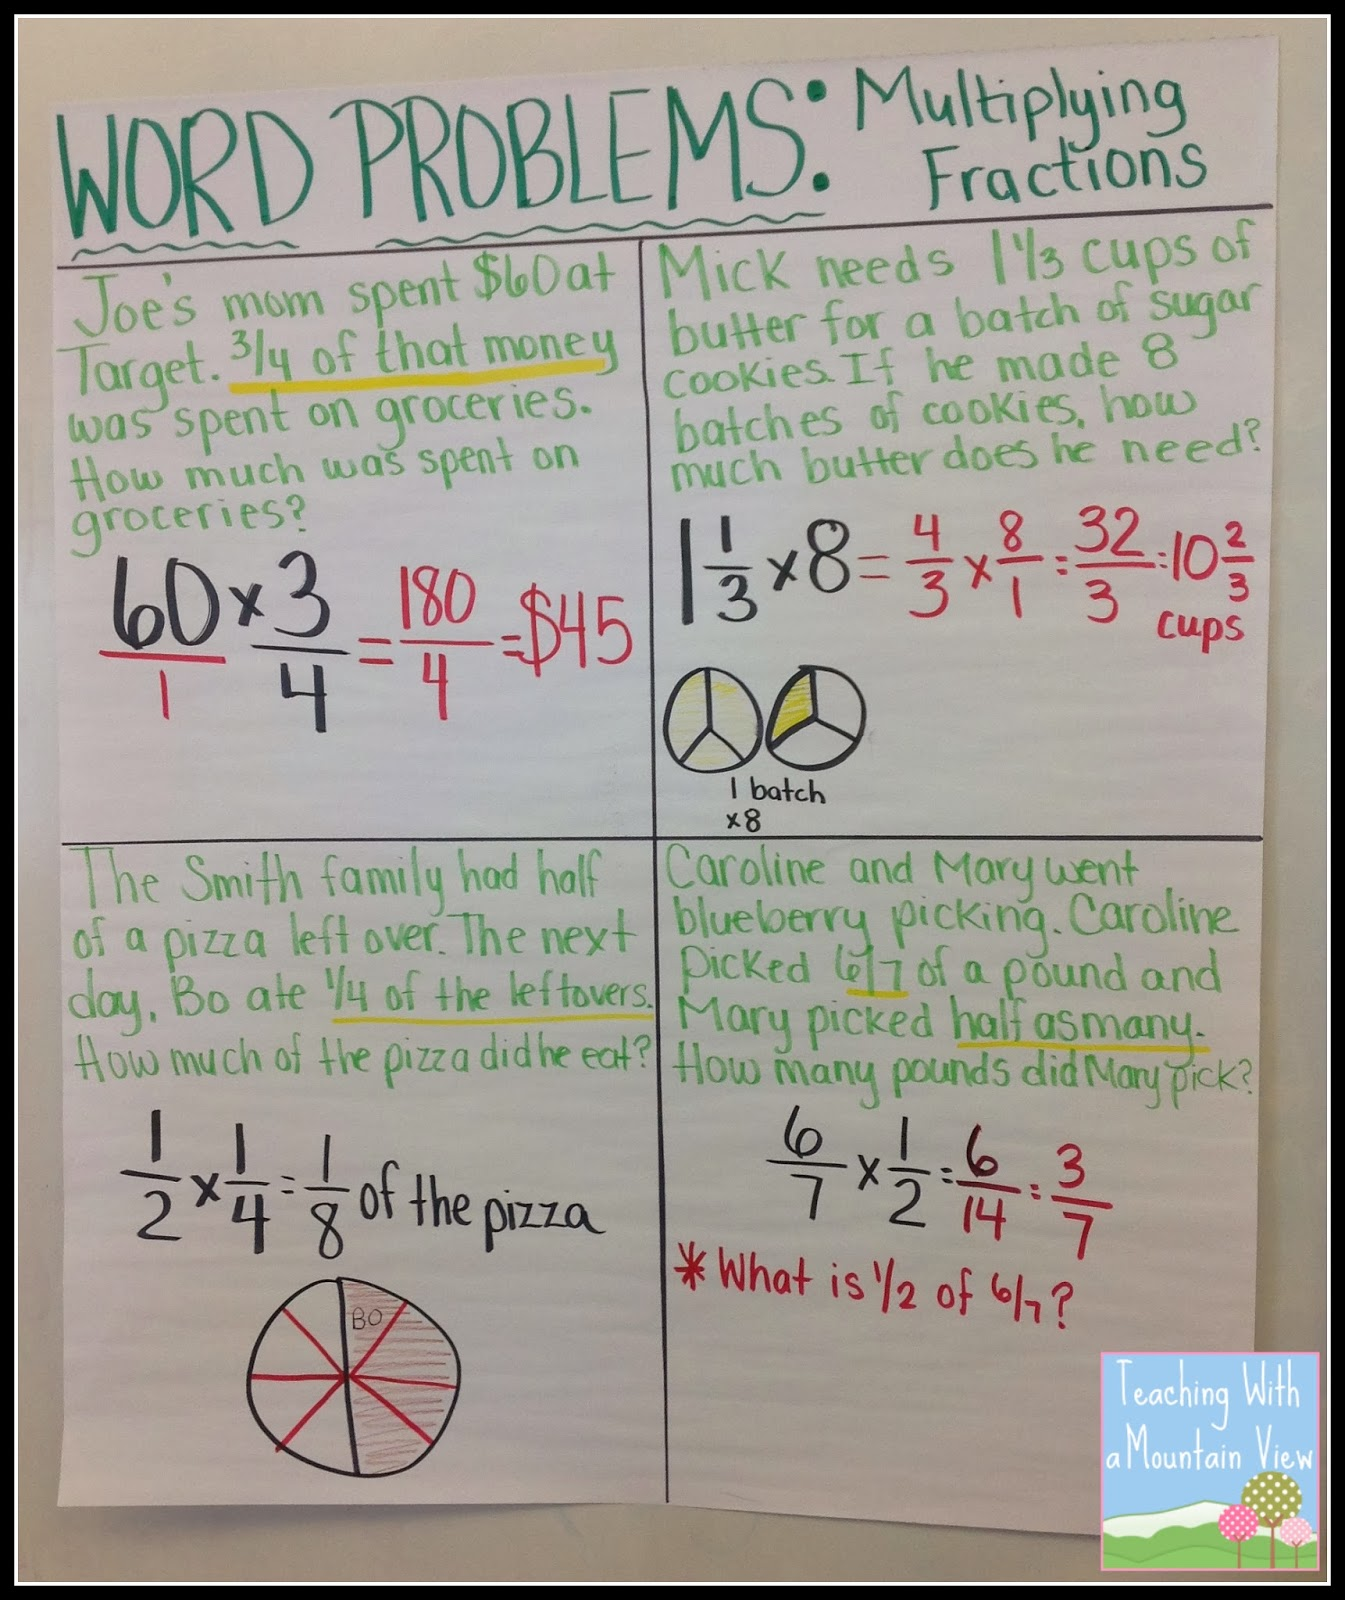 Multiplying Fractions Word Problems 1 345 1 600 Pixels